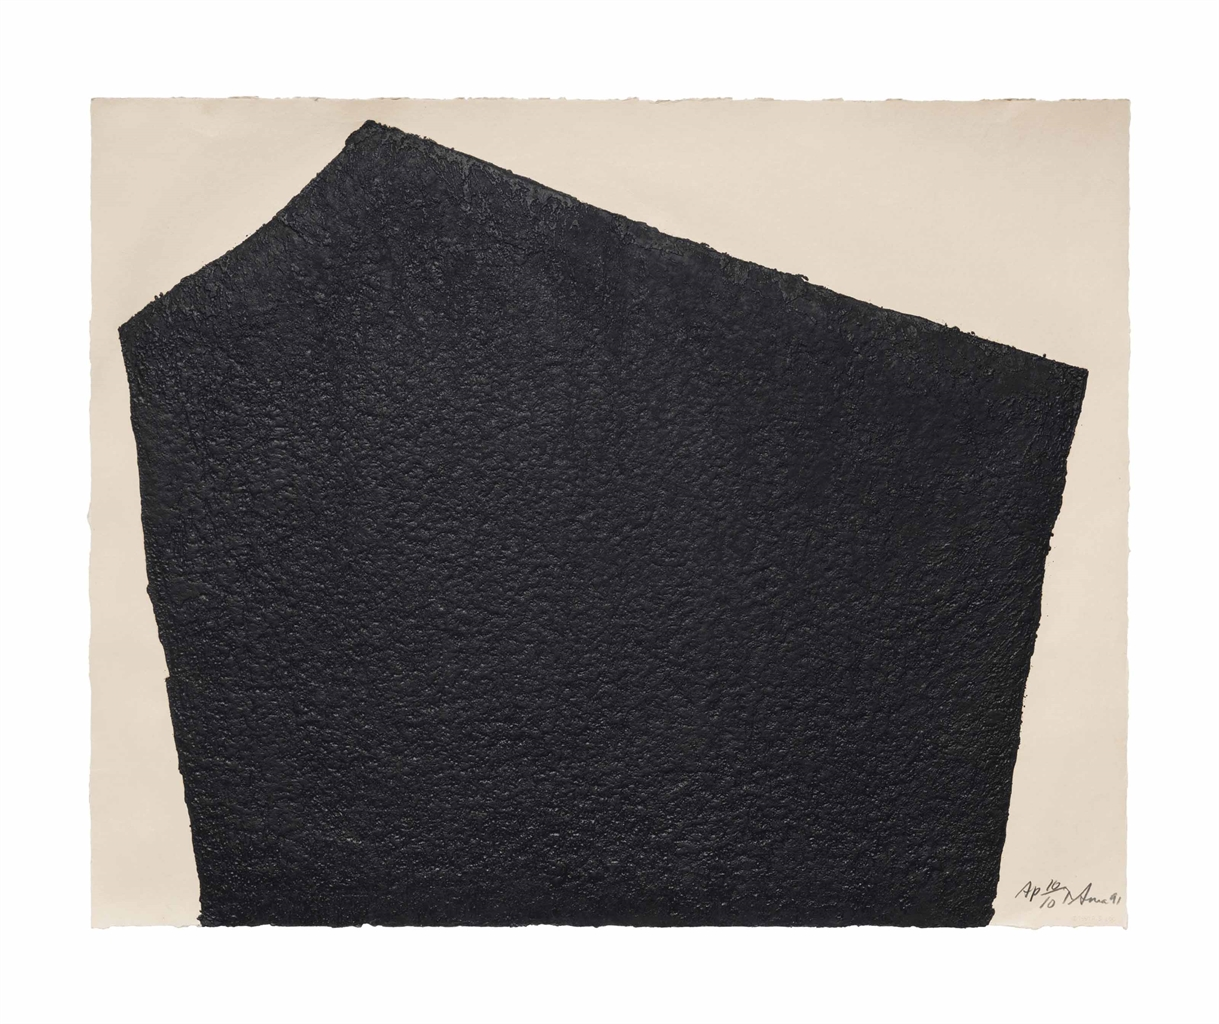 Richard Serra-Hreppholar VI (Berswordt-Wallrabe 79)-1991